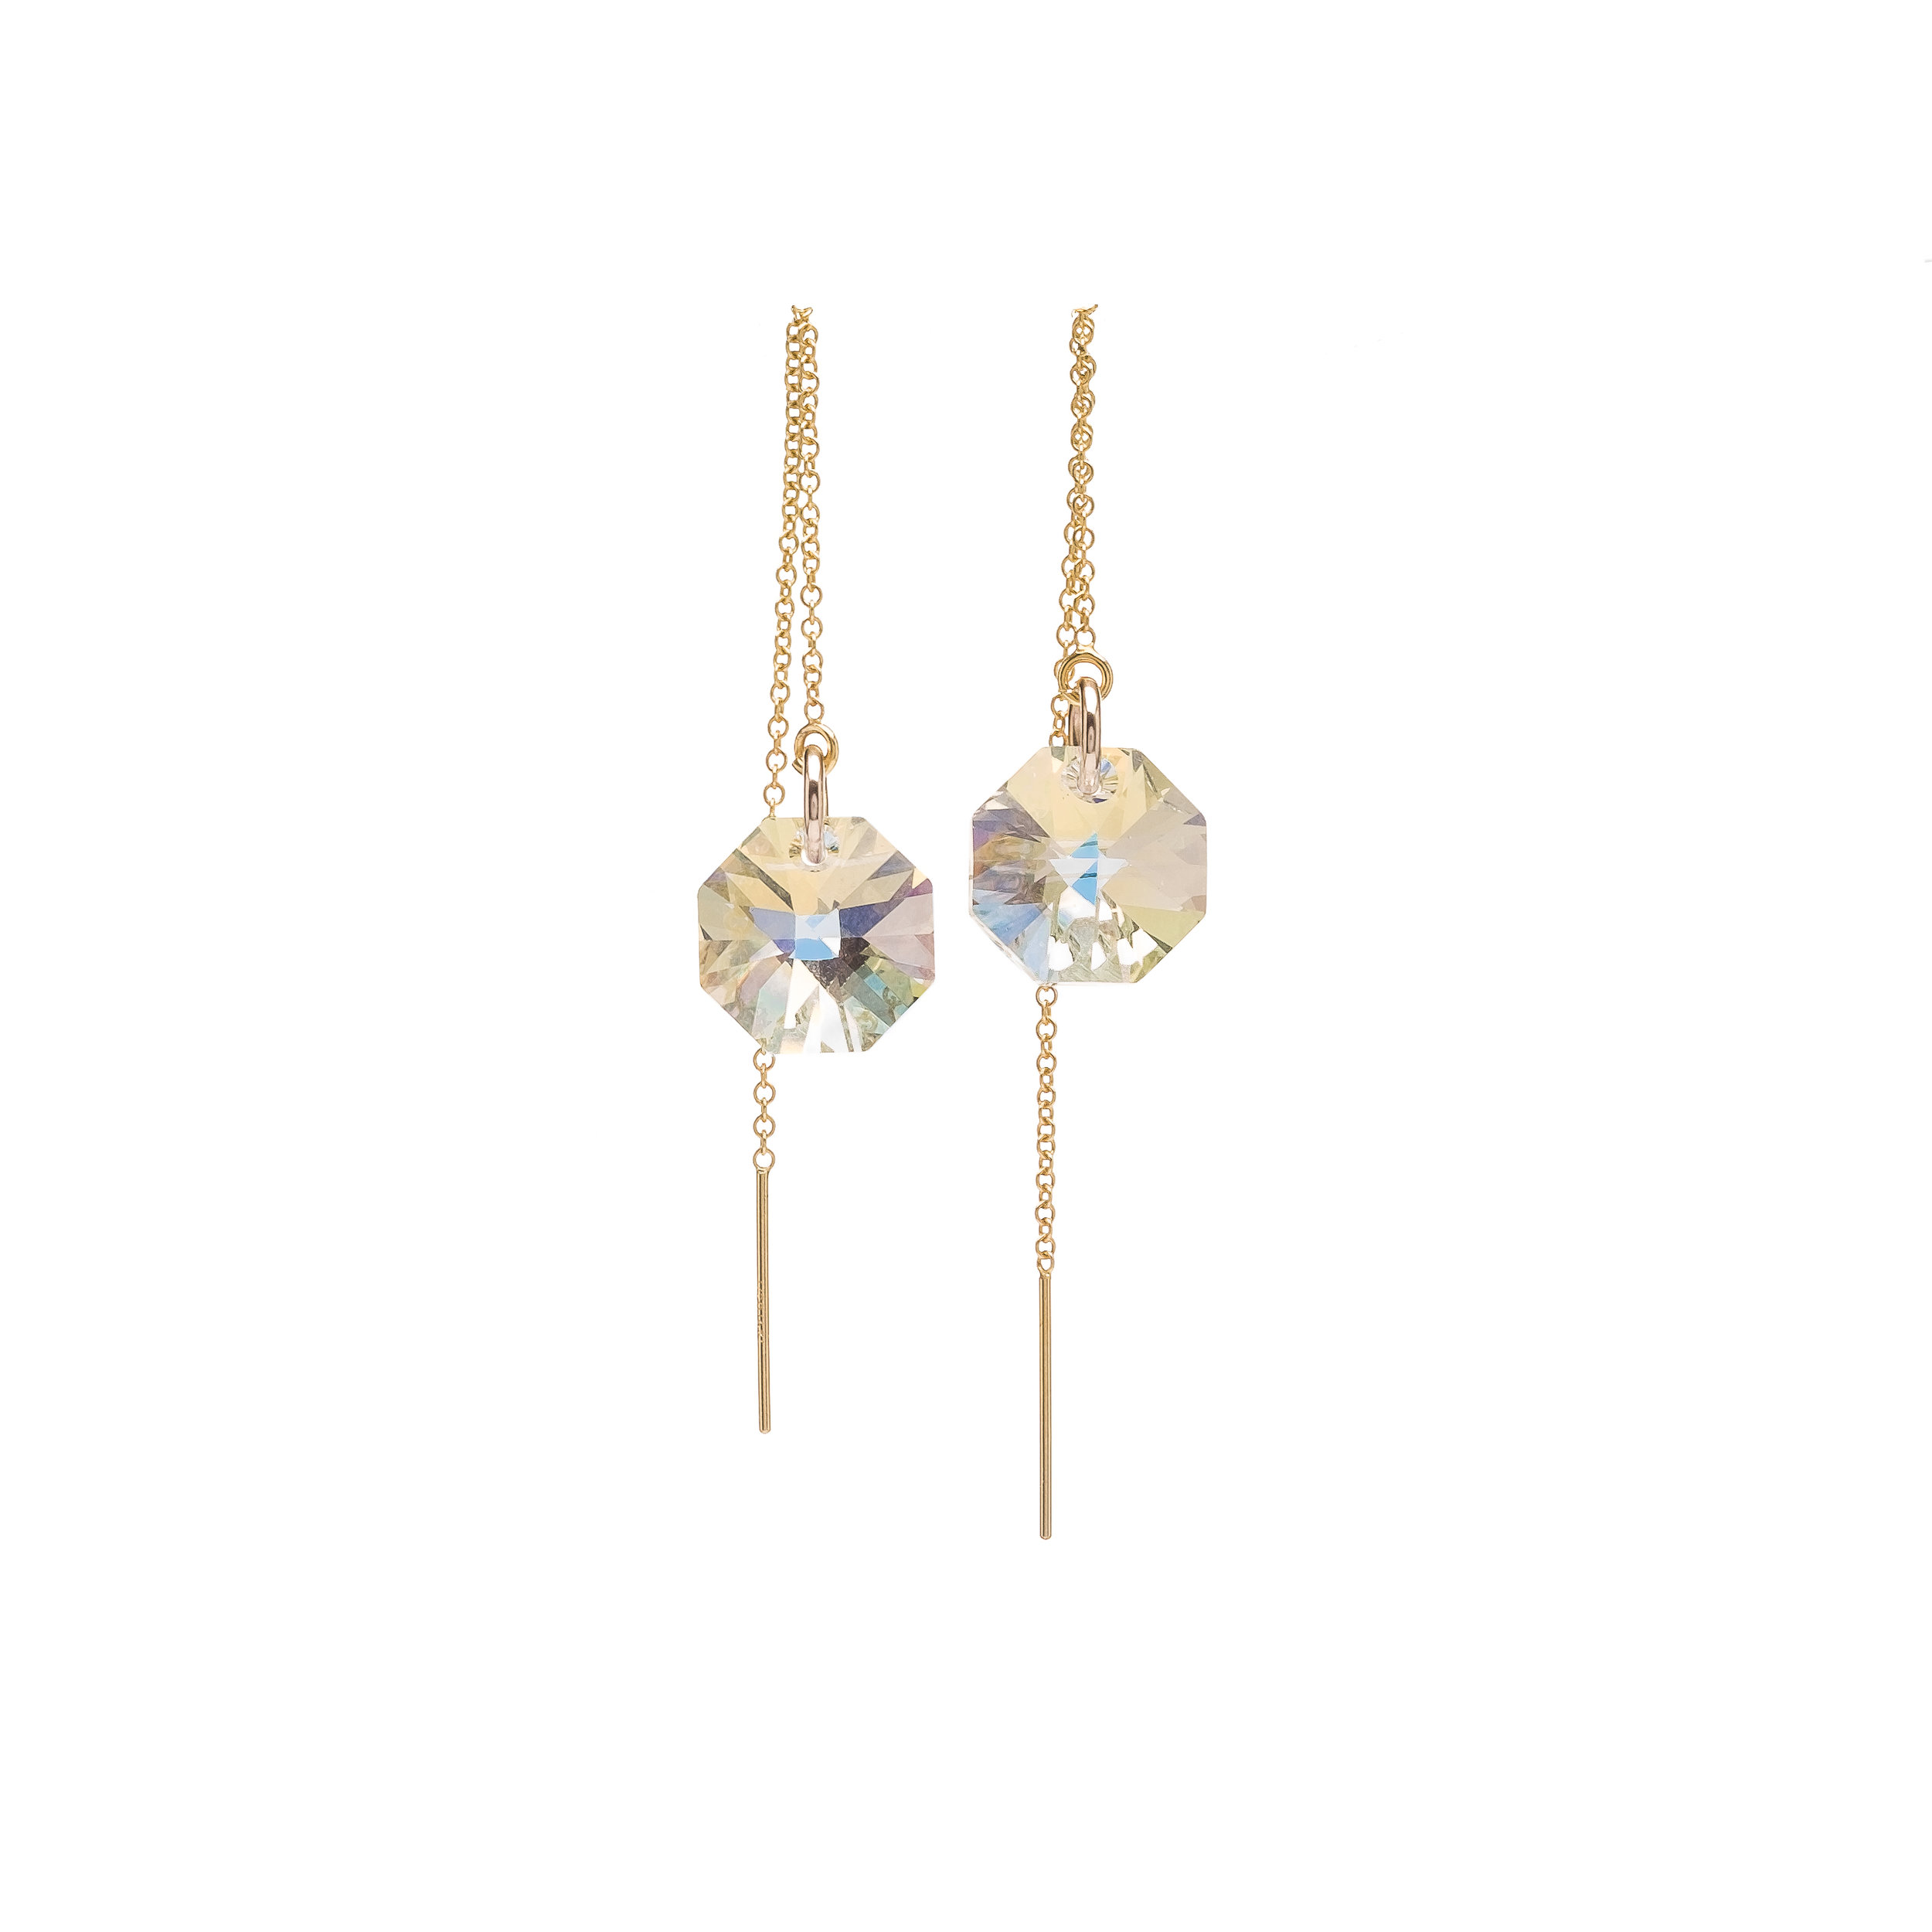 Octagon Swarovski Crystal Threaders - $65 Embrace your individual side with these Holiday Threader earrings. These earrings are great for a quirky yet classy look that's sure to dazzle.